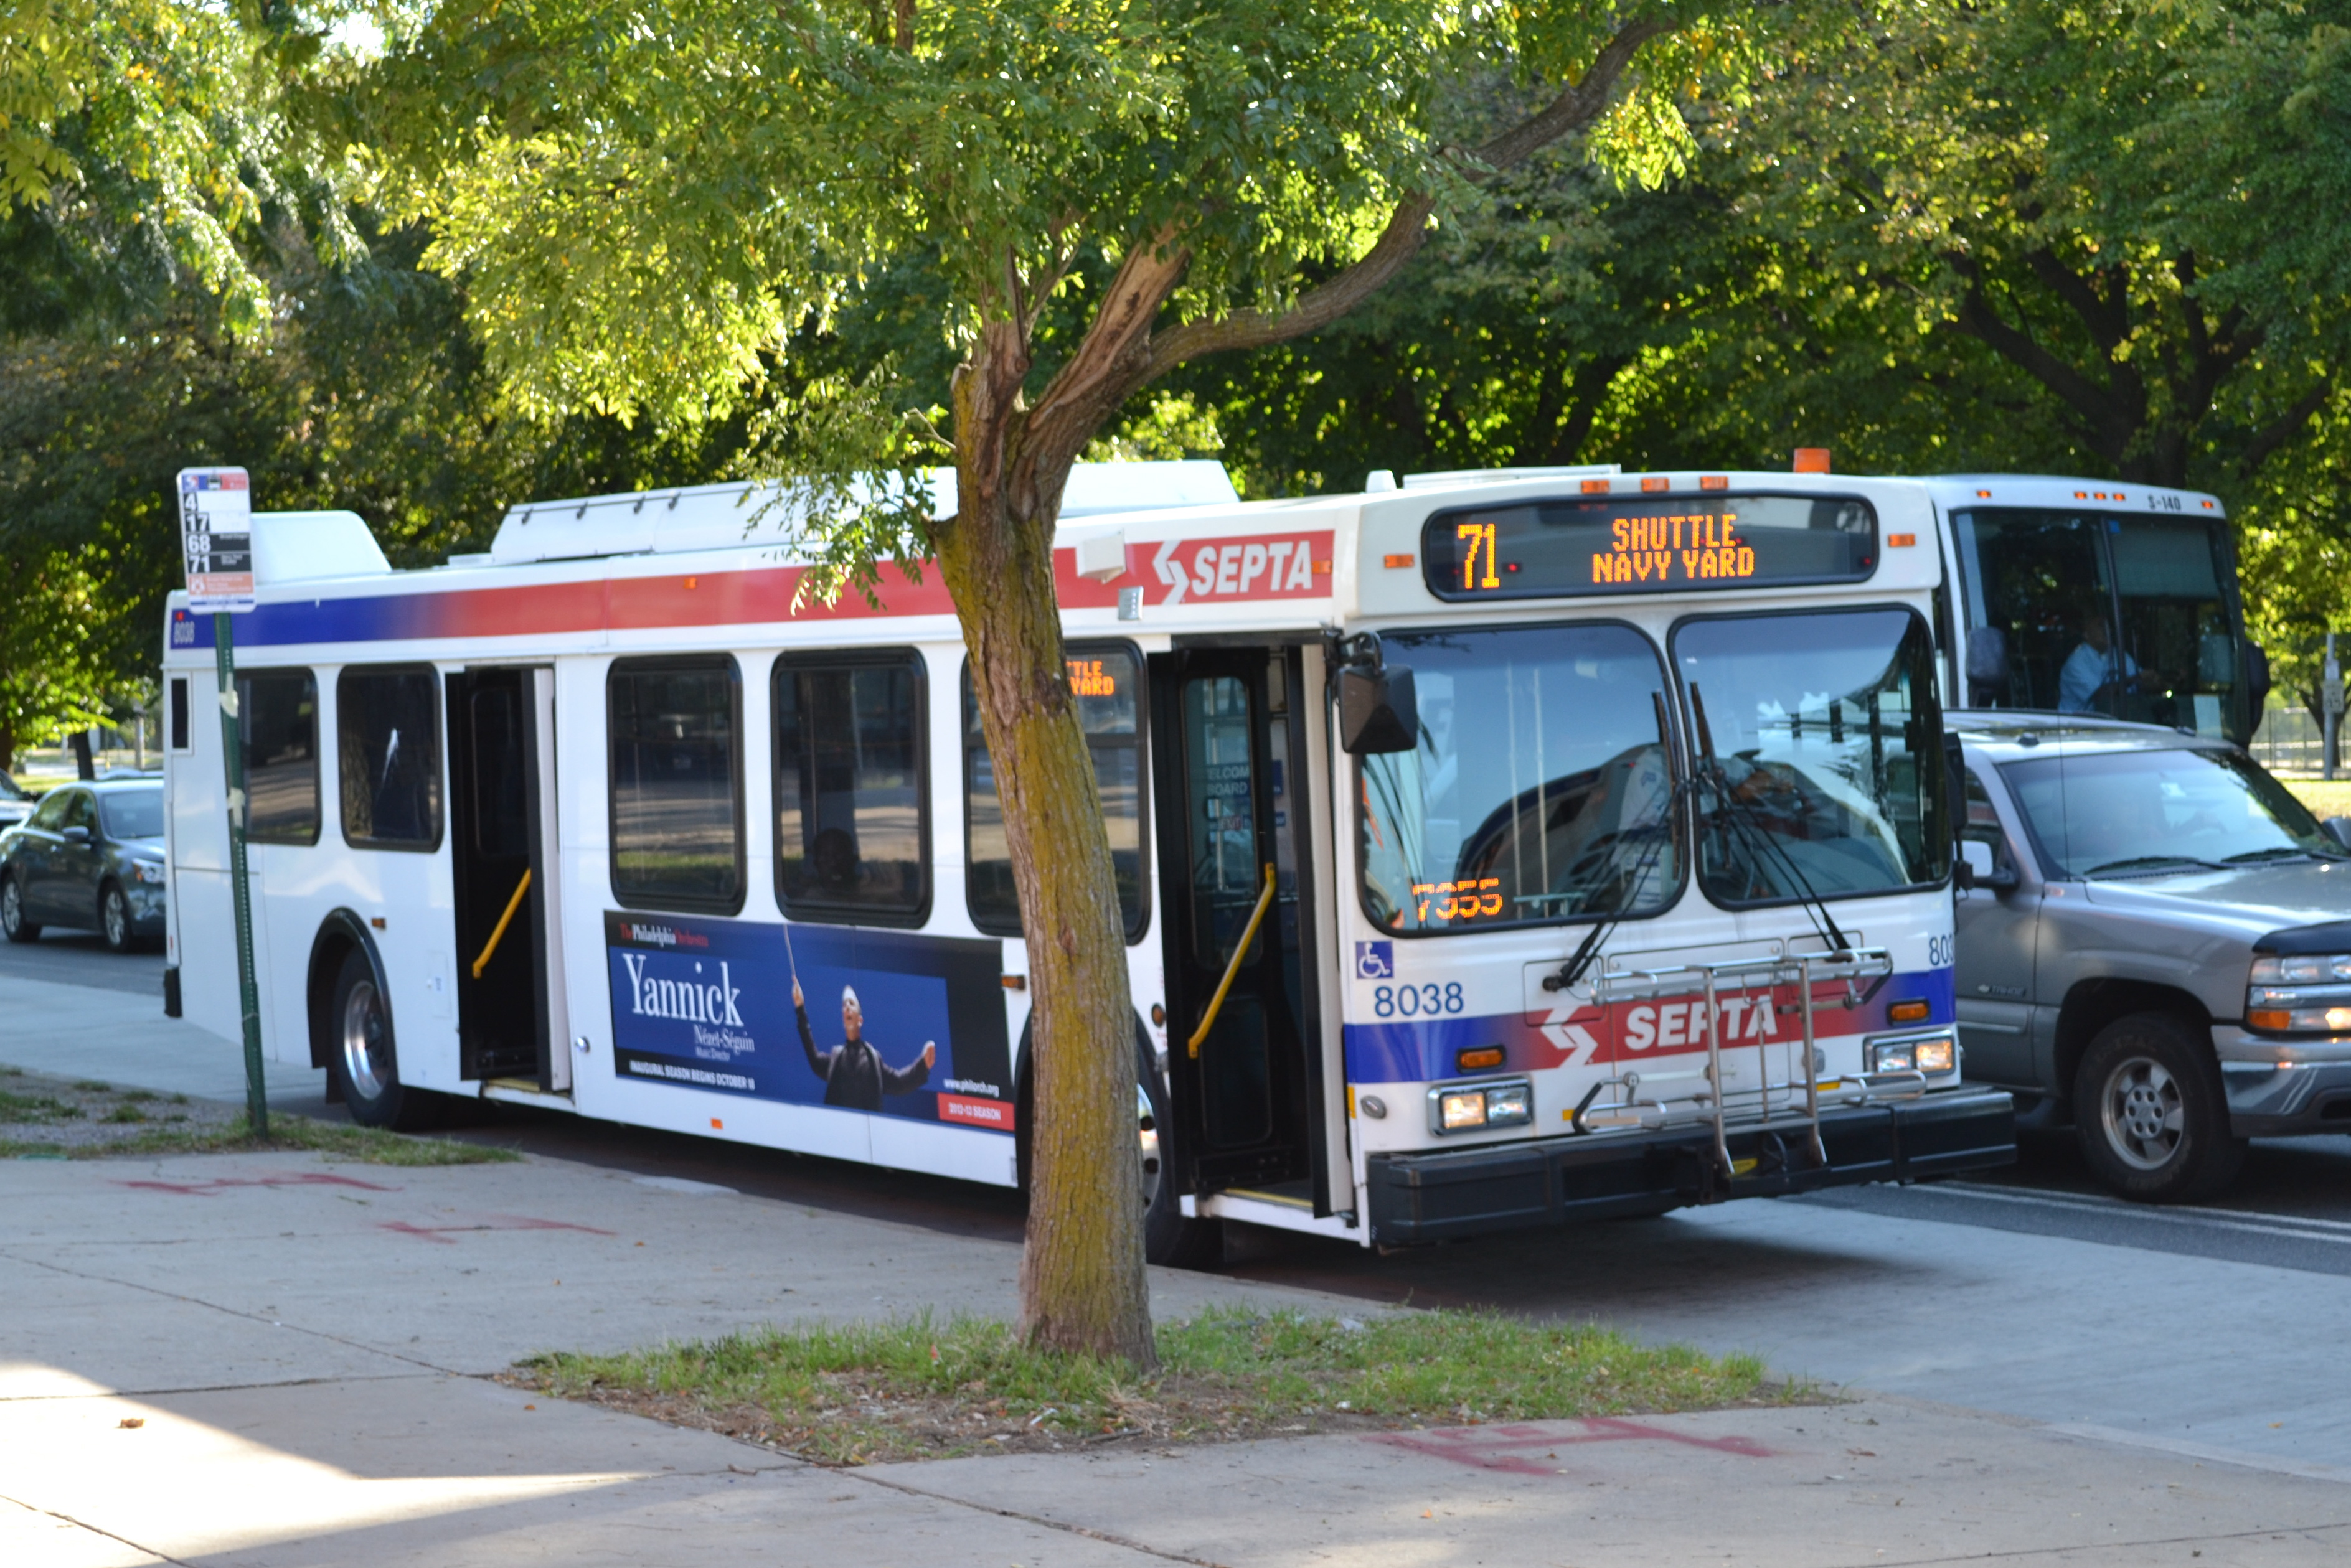 SEPTA will discontinue its Route 71 shuttle service November 30